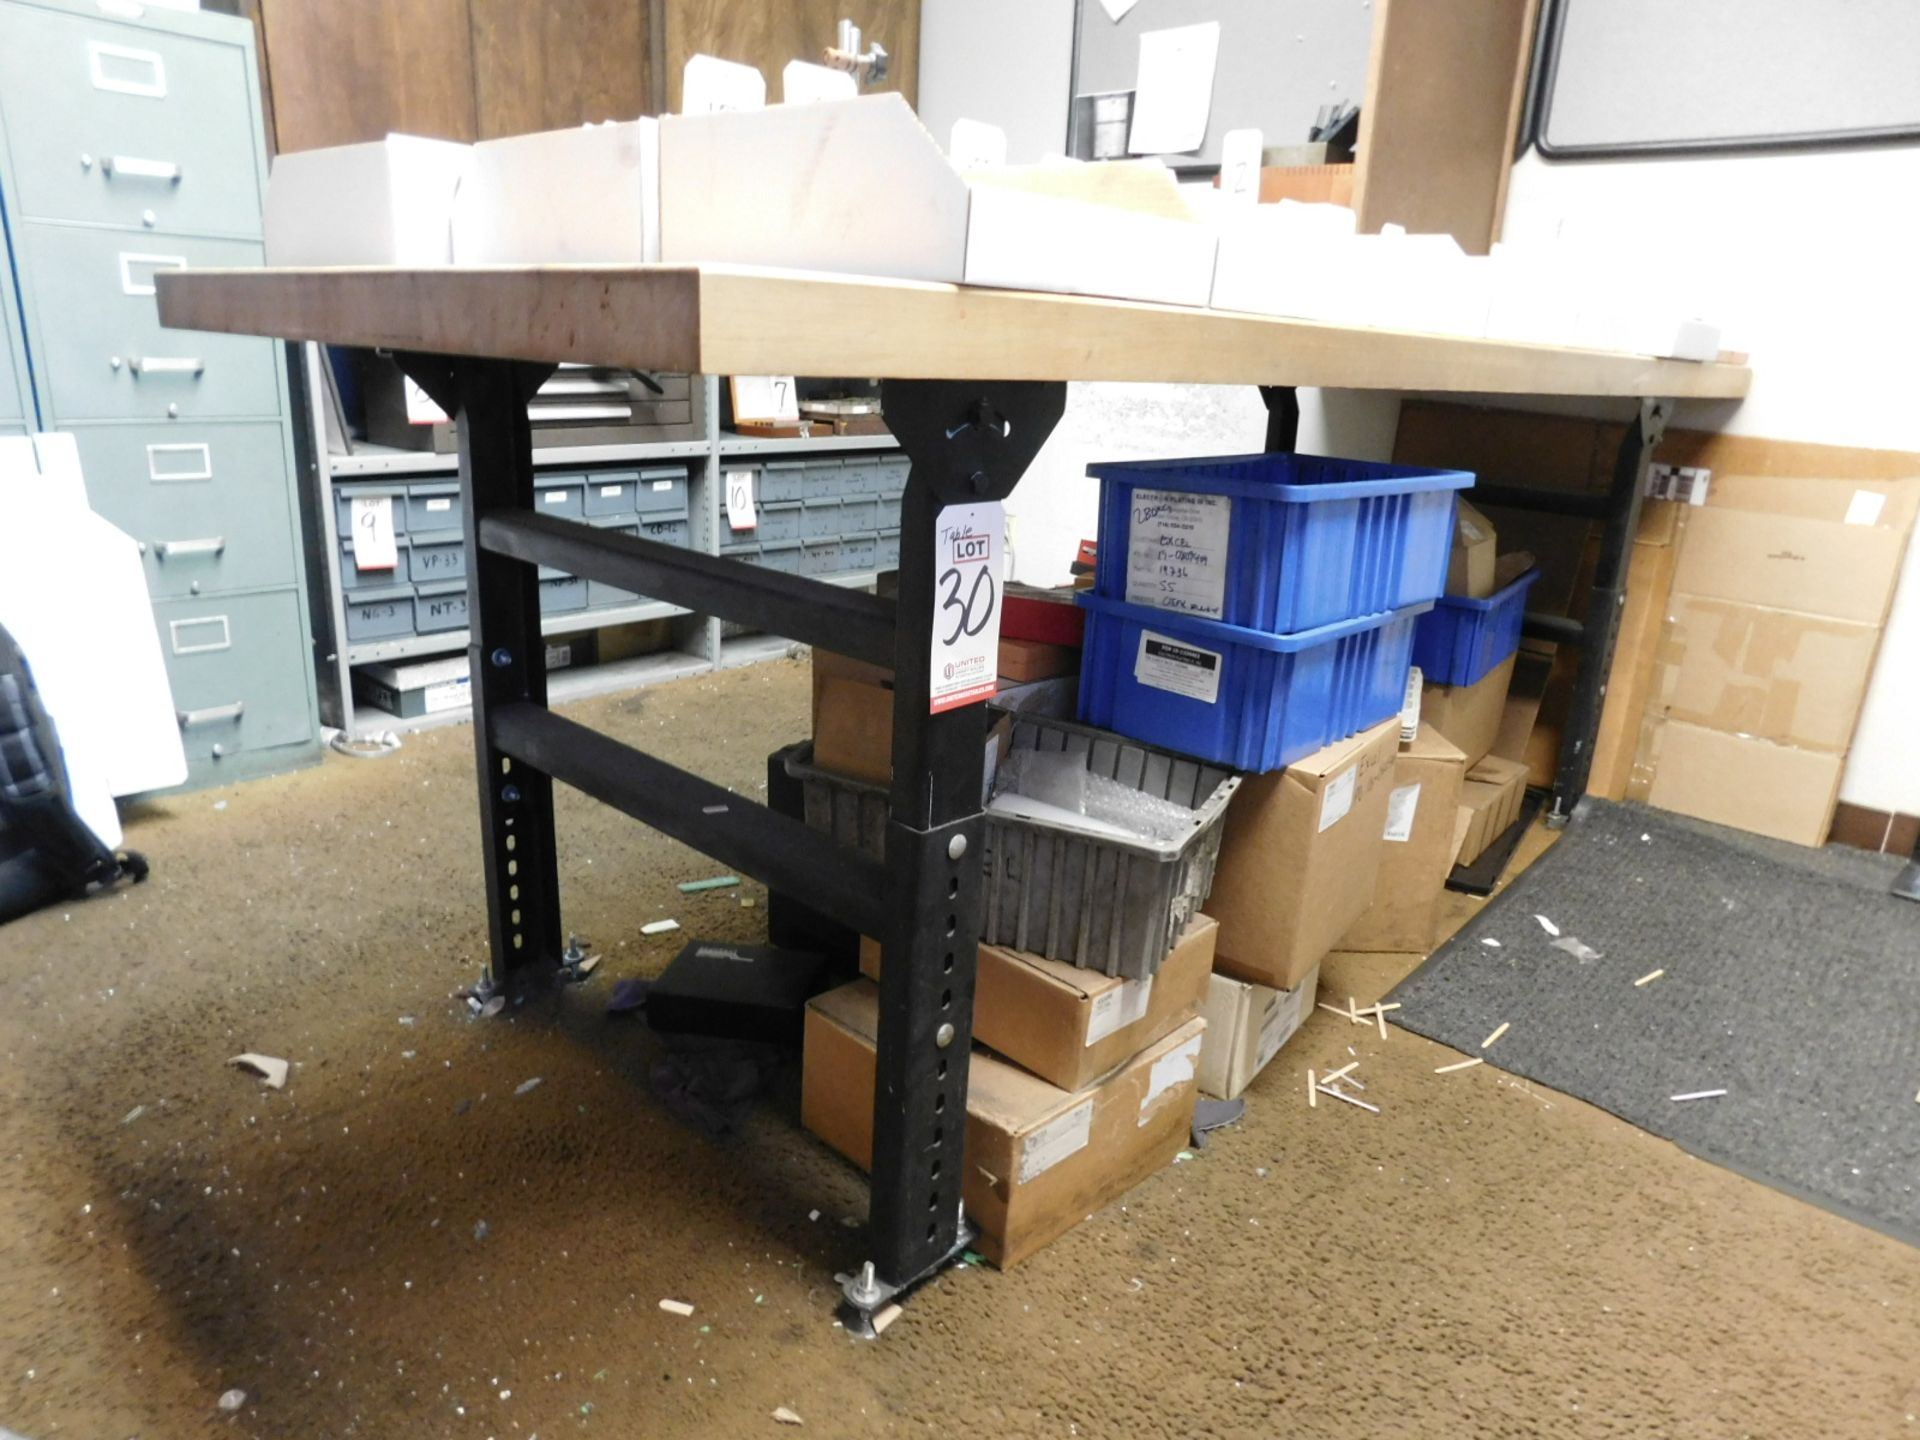 """Lot 30 - BUTCHERBLOCK WORKBENCH, ADJUSTABLE HEIGHT, W/ 8' X 3' X 2-1/4"""" THICK TOP, CONTENTS NOT INCLUDED"""